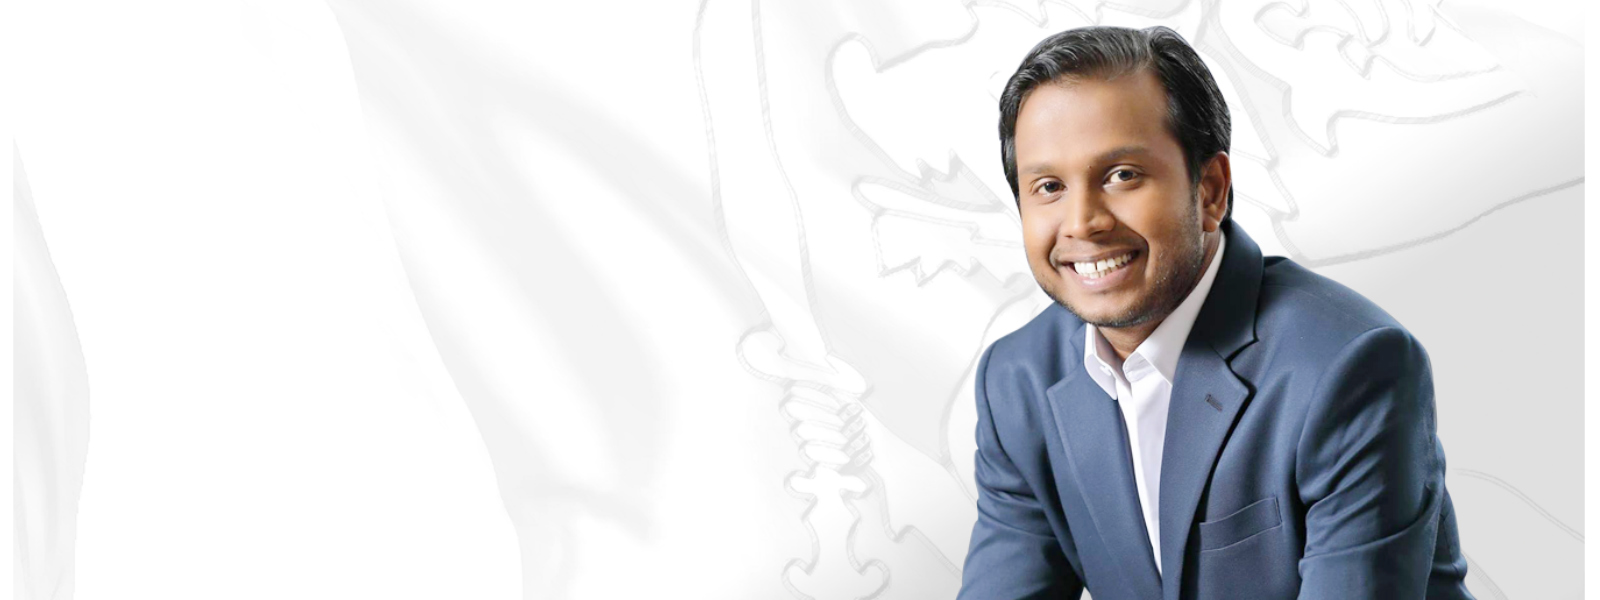 Milinda Rajapaksa shortlisted for One Young World Politician of the Year Award 2019 world prize